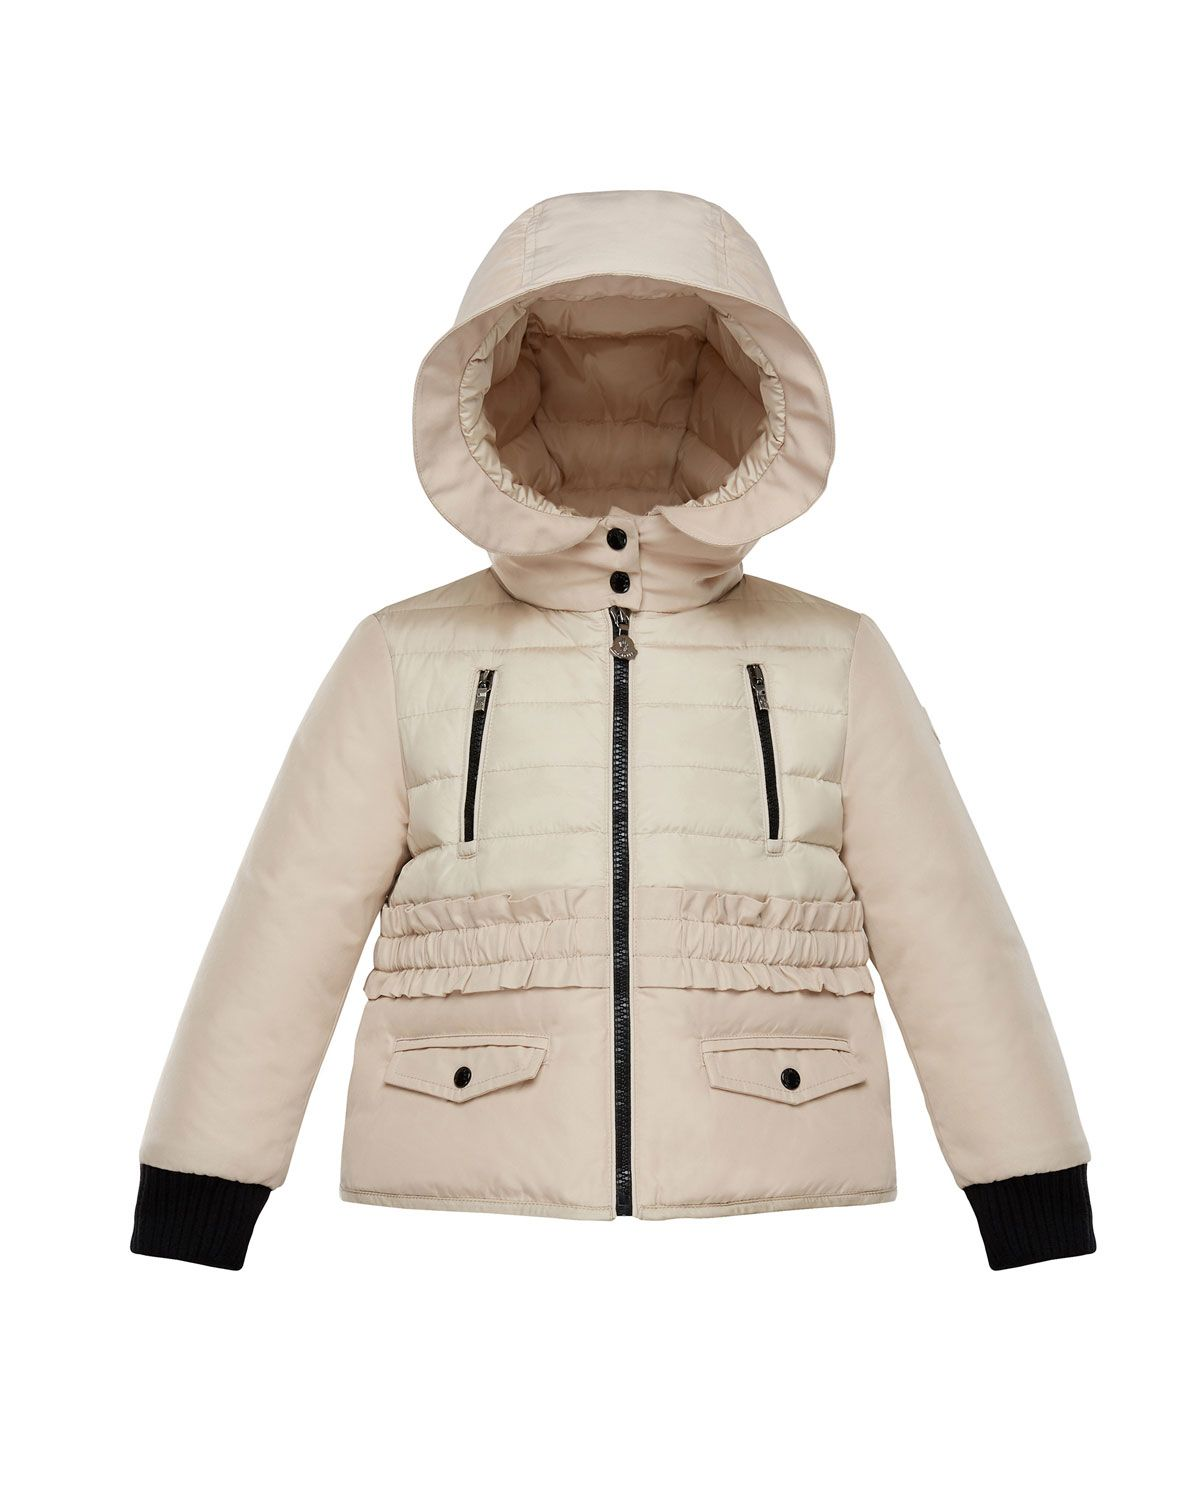 26b76bd0b Adonise Two-Tone Ruffle-Trim Hooded Jacket Size 8-14   Products ...